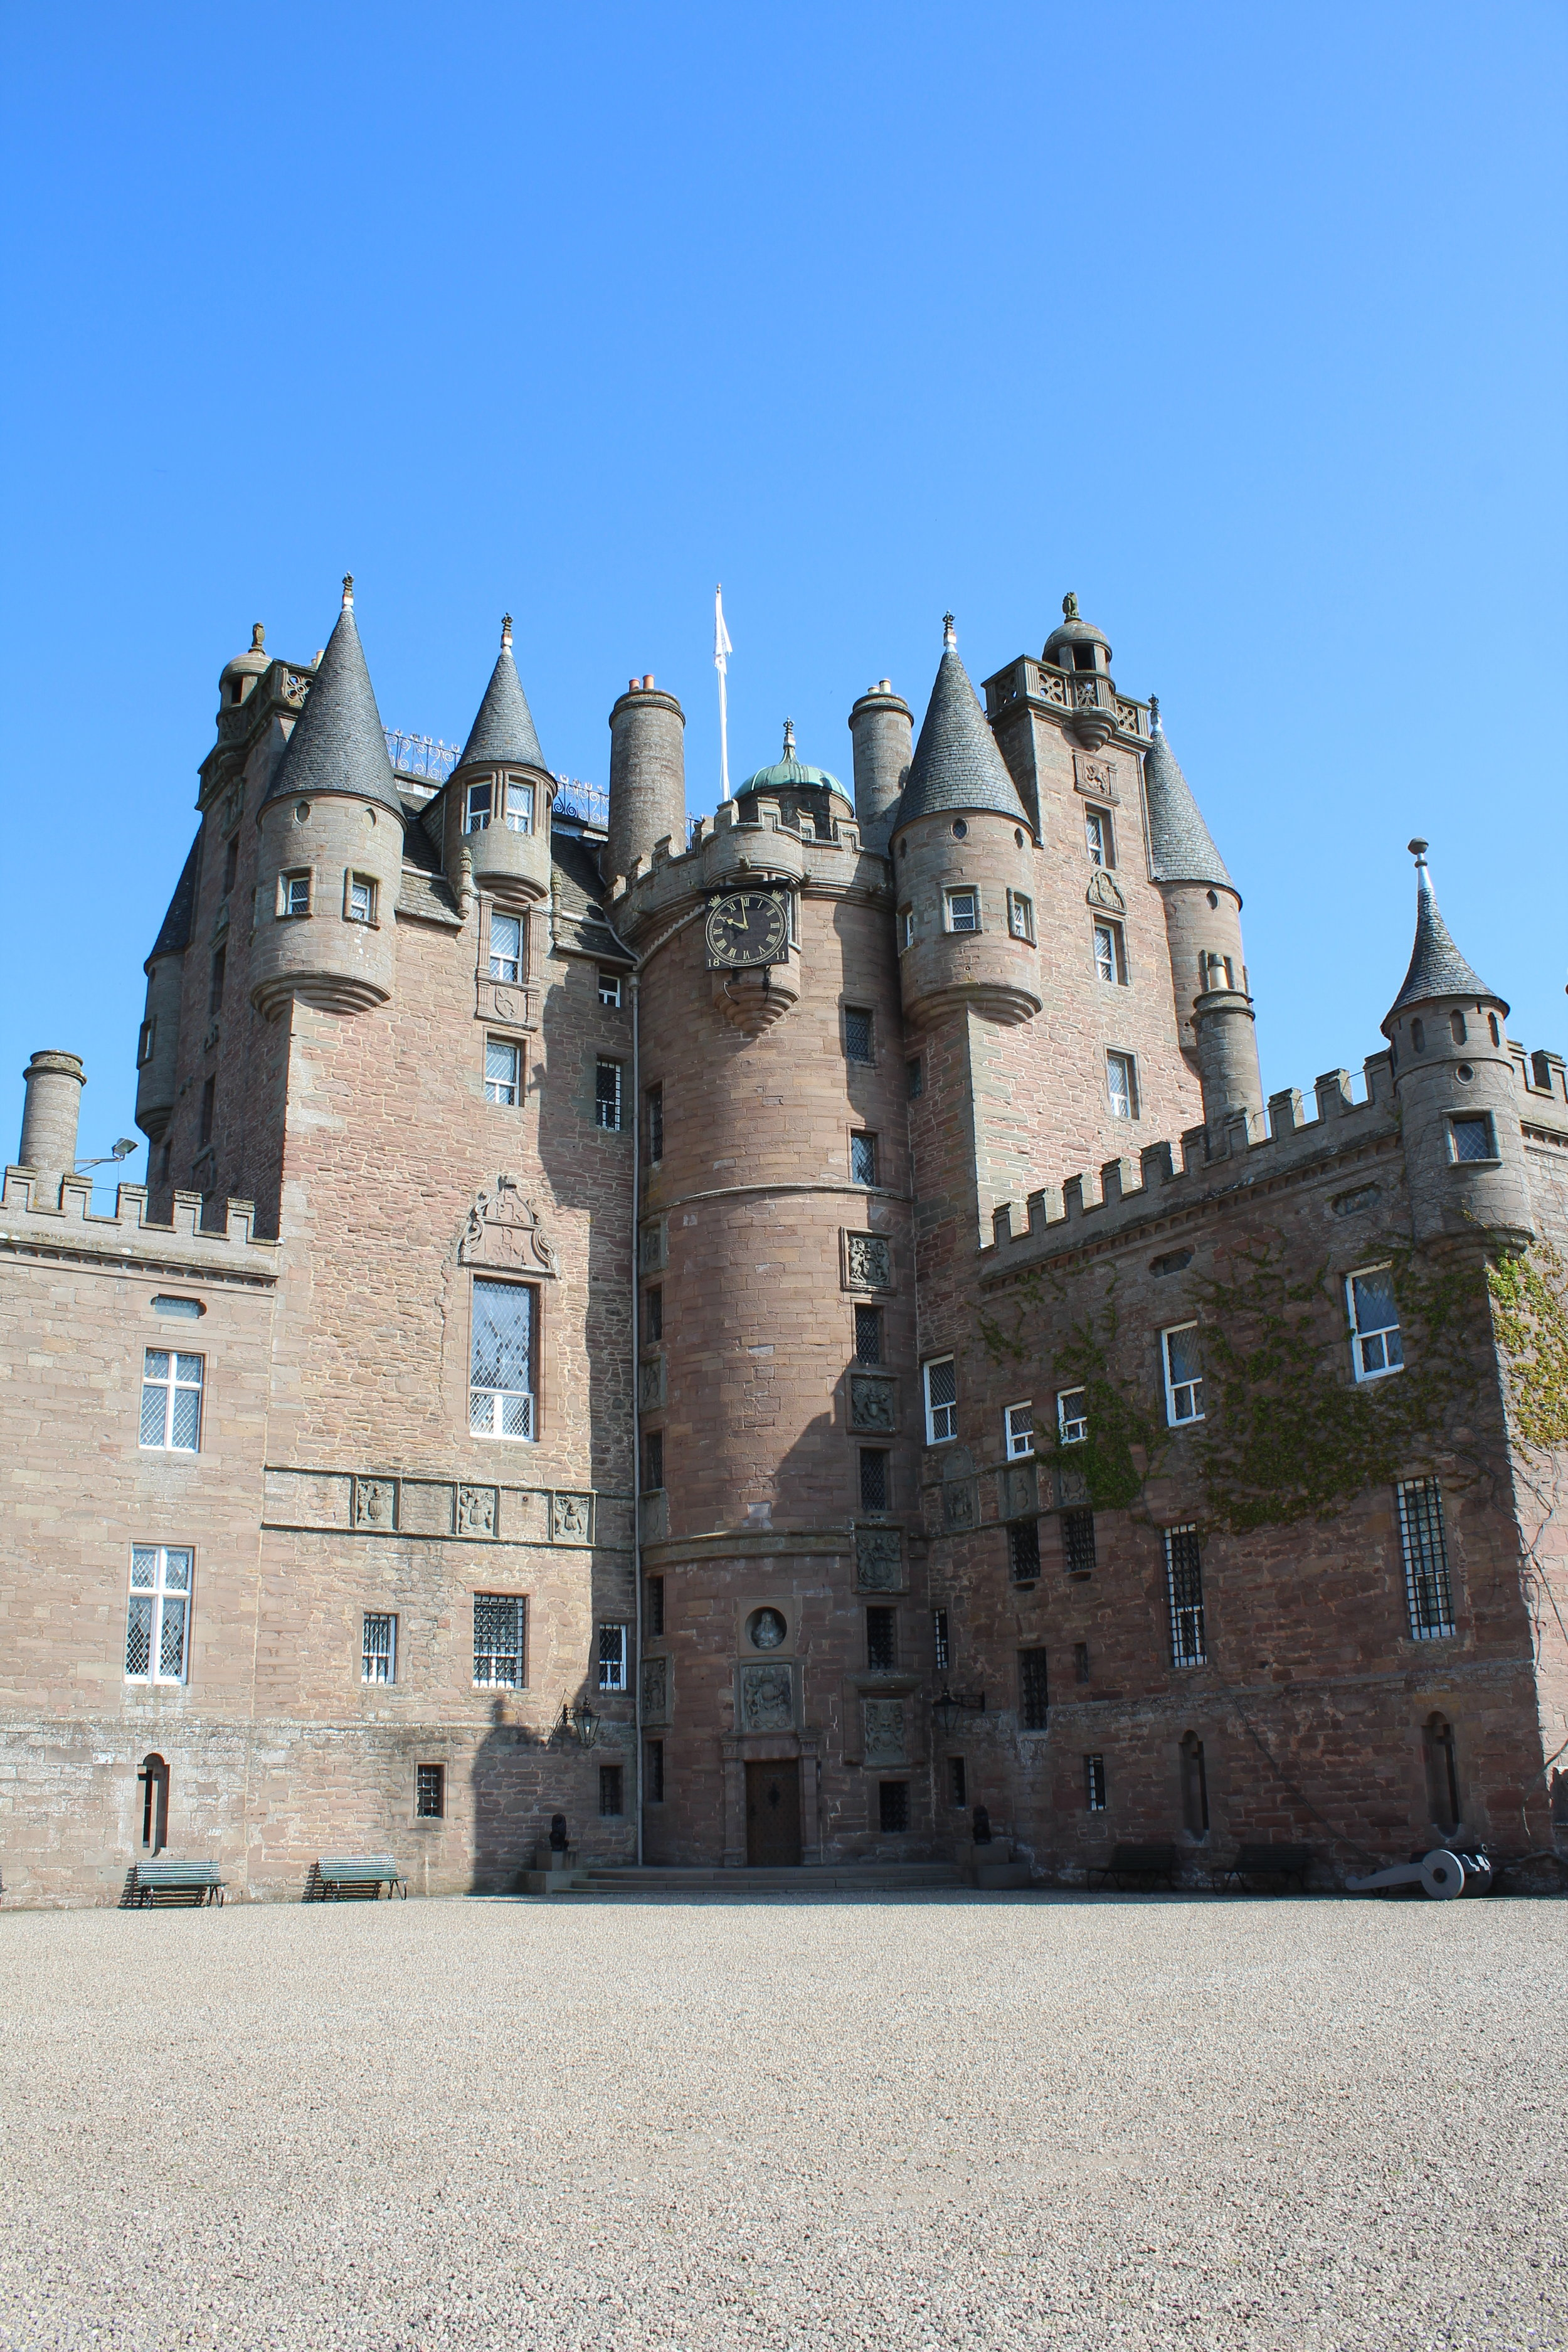 The fairytale facade of Glamis Castle